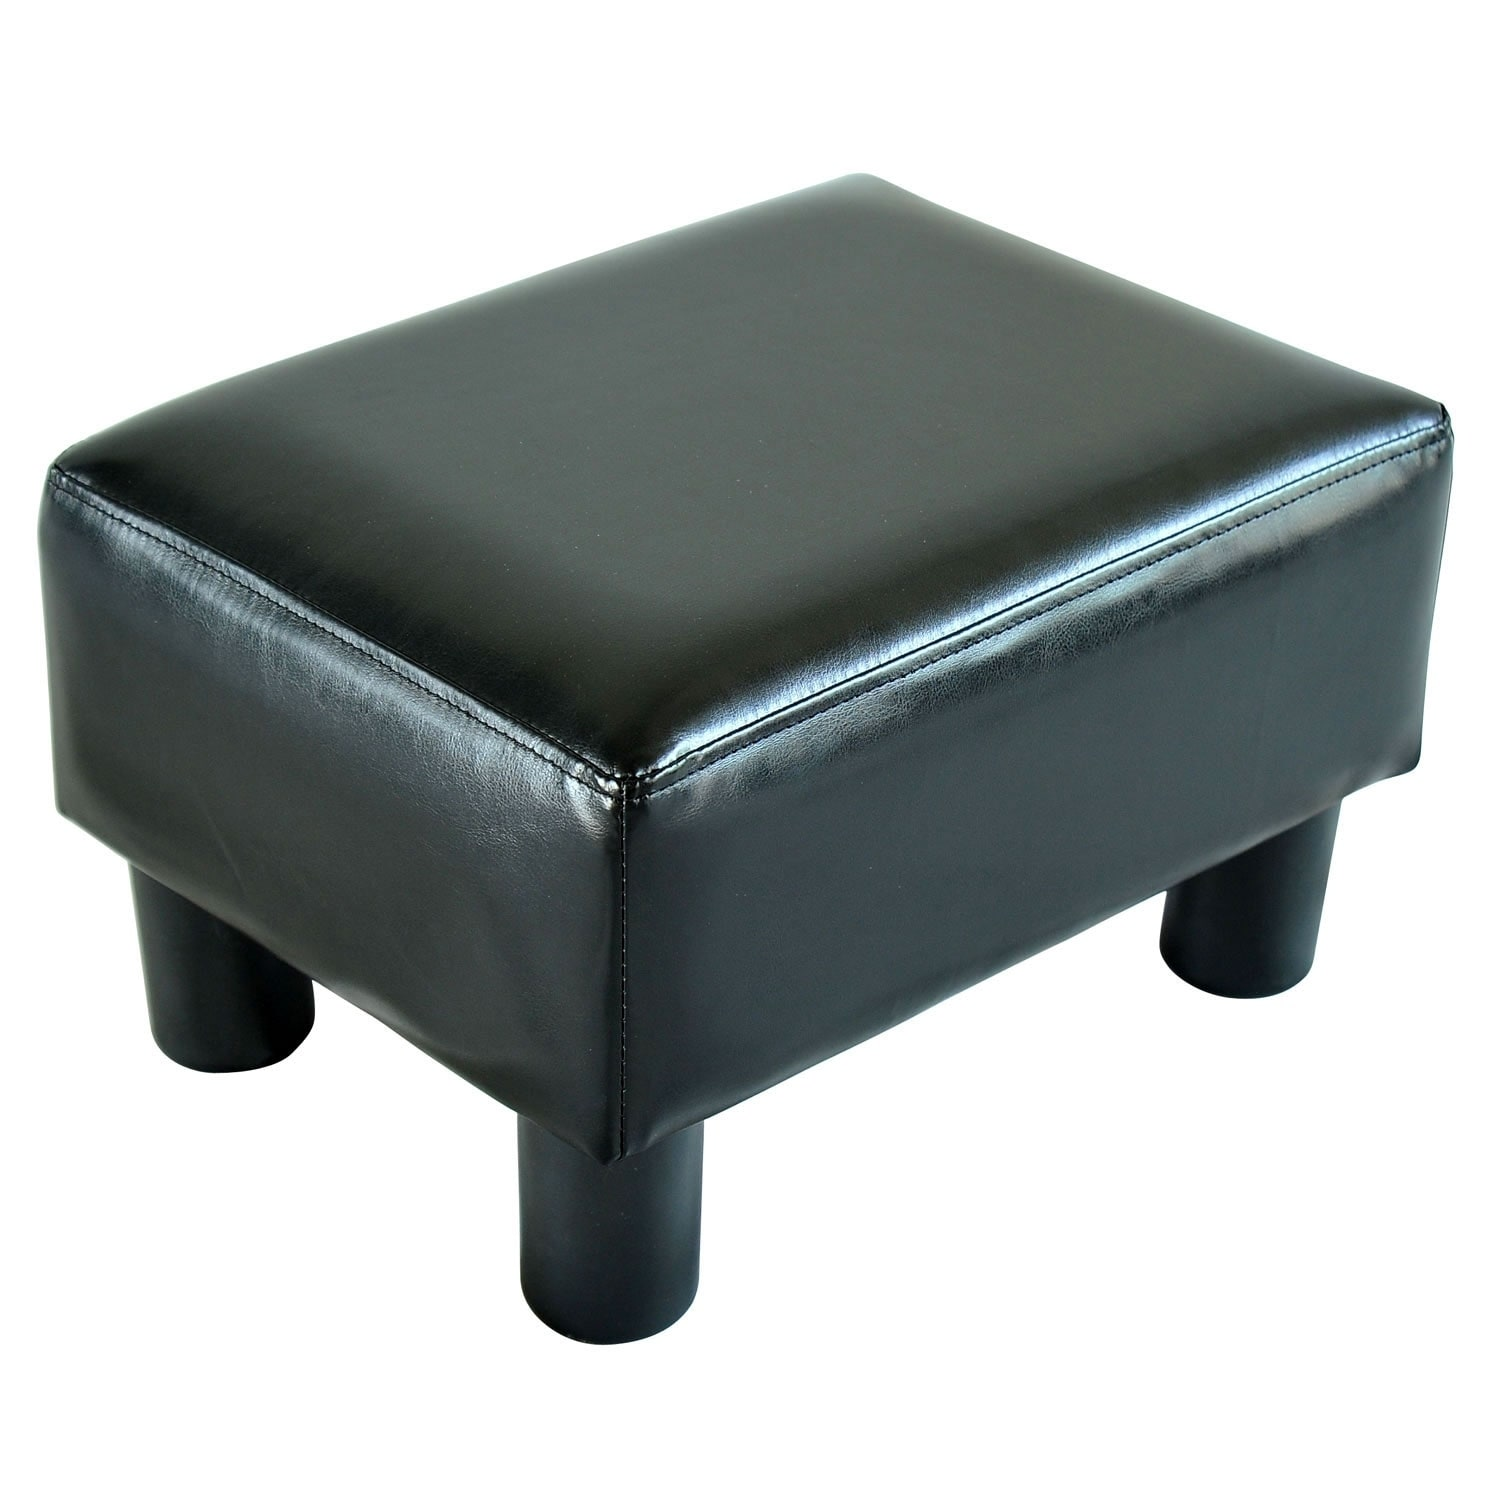 Stupendous Porch Den Meadow Modern Small Black Faux Leather Ottoman Footrest Stool Bralicious Painted Fabric Chair Ideas Braliciousco